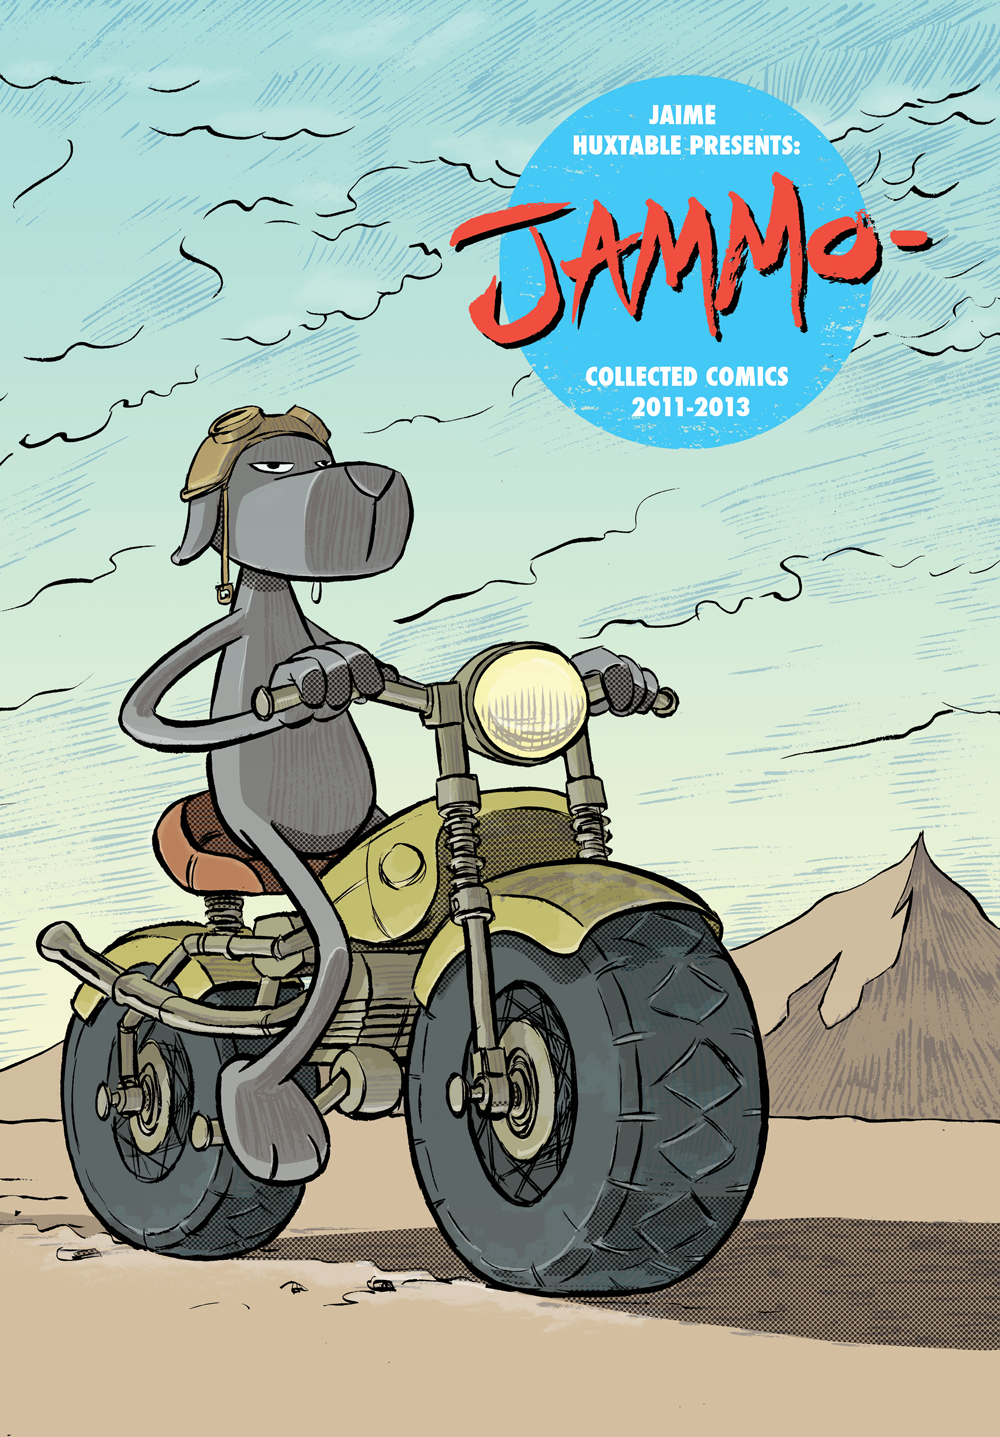 JAMMO-FRONT-COVER-WITH-LOGO.png